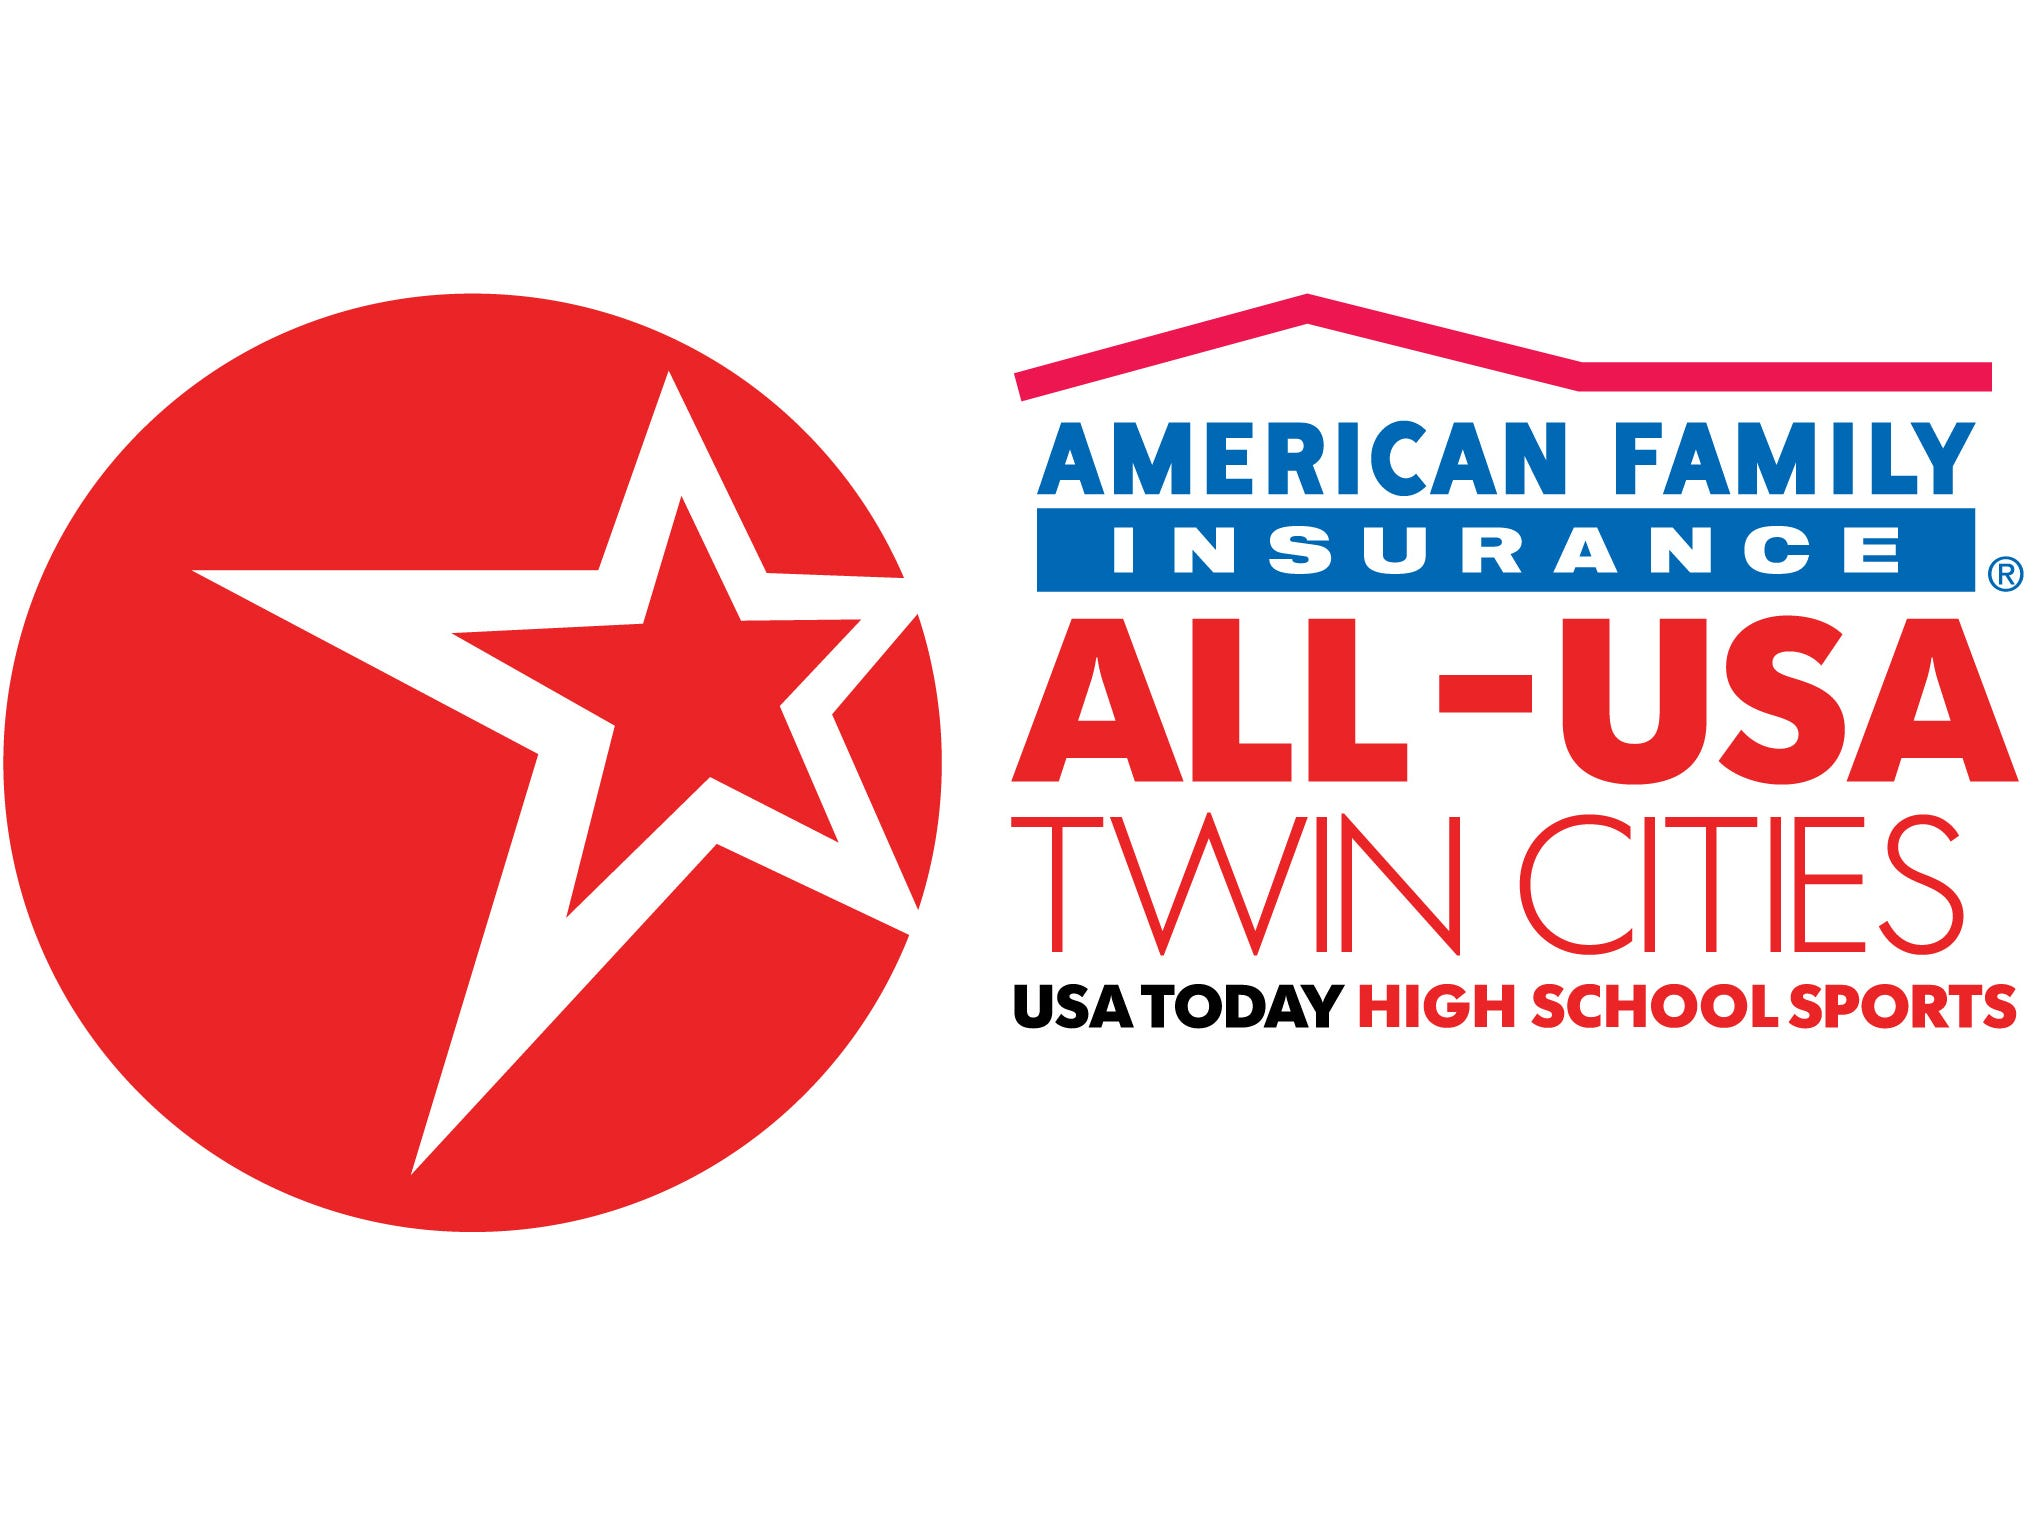 American Family Insurance ALL-USA Twin Cities